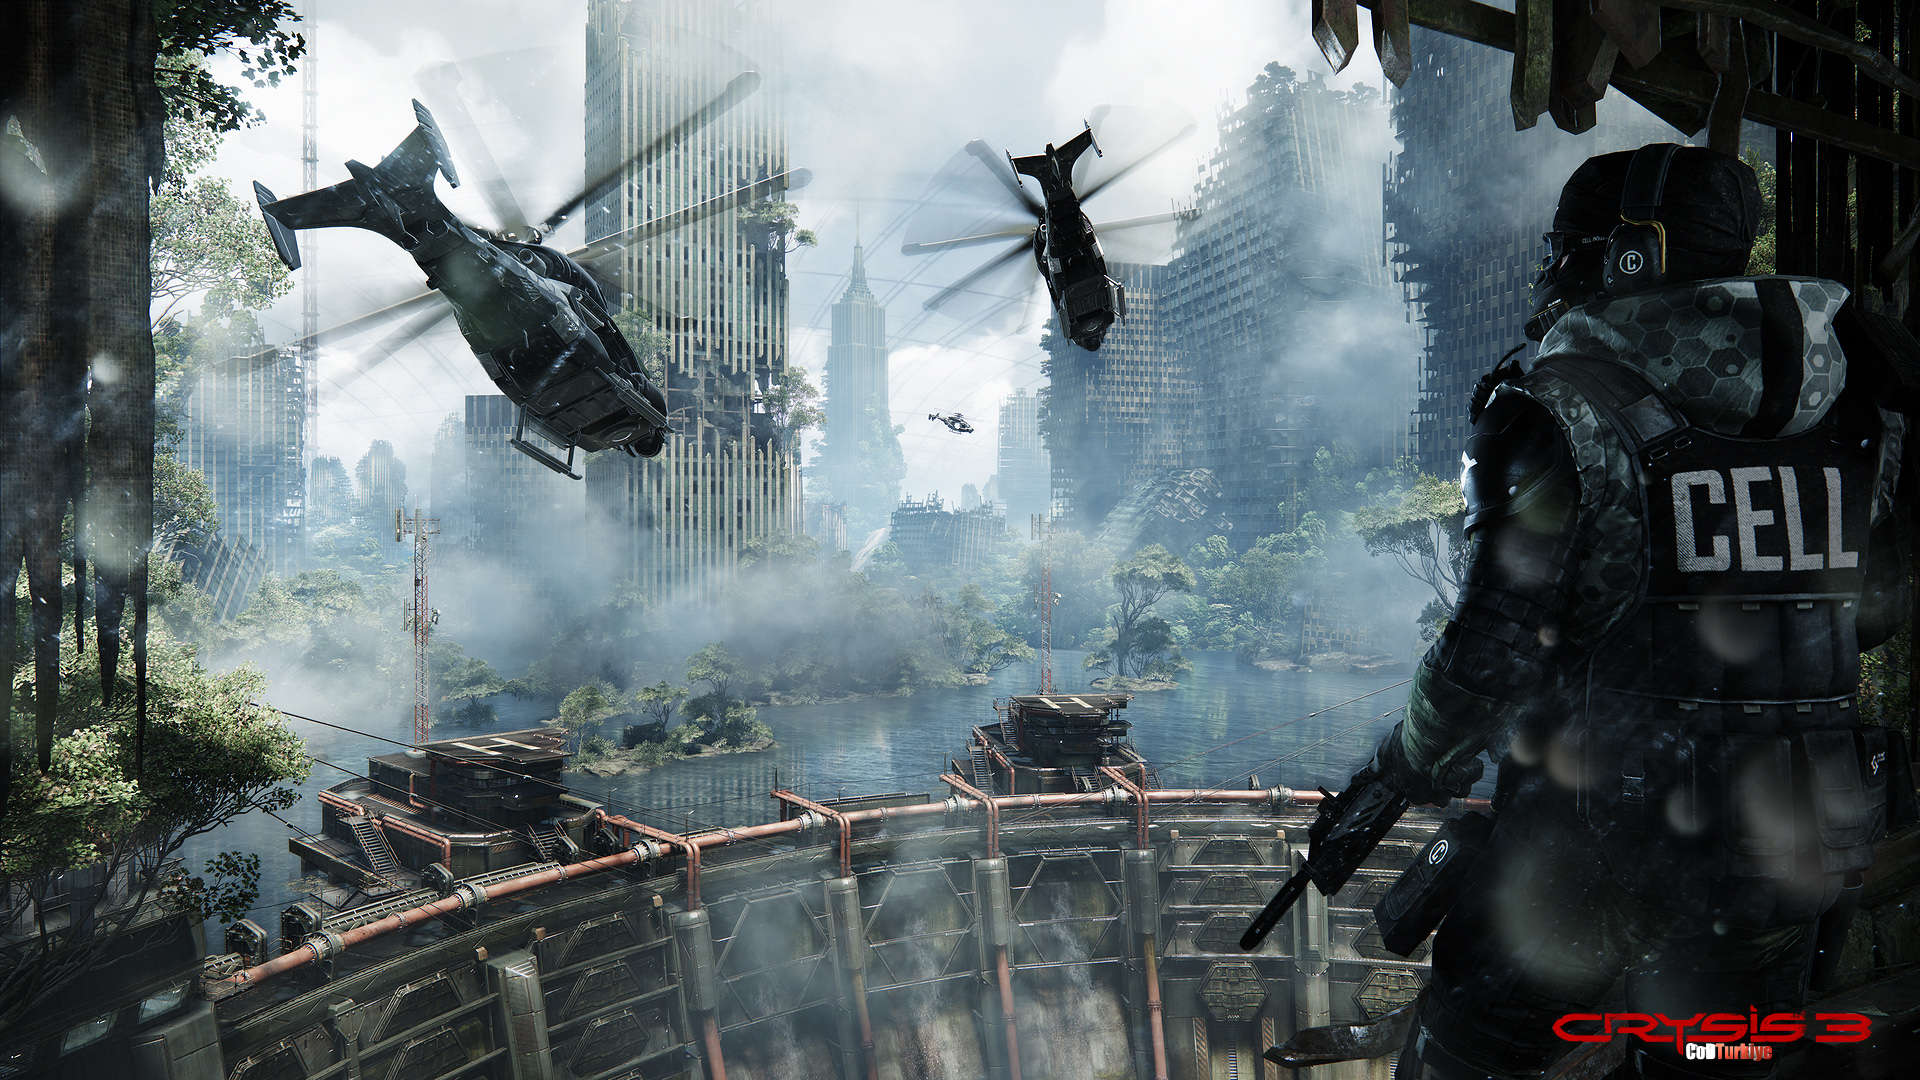 Crysis 3 HD Wallpapers Predator bow helicopter